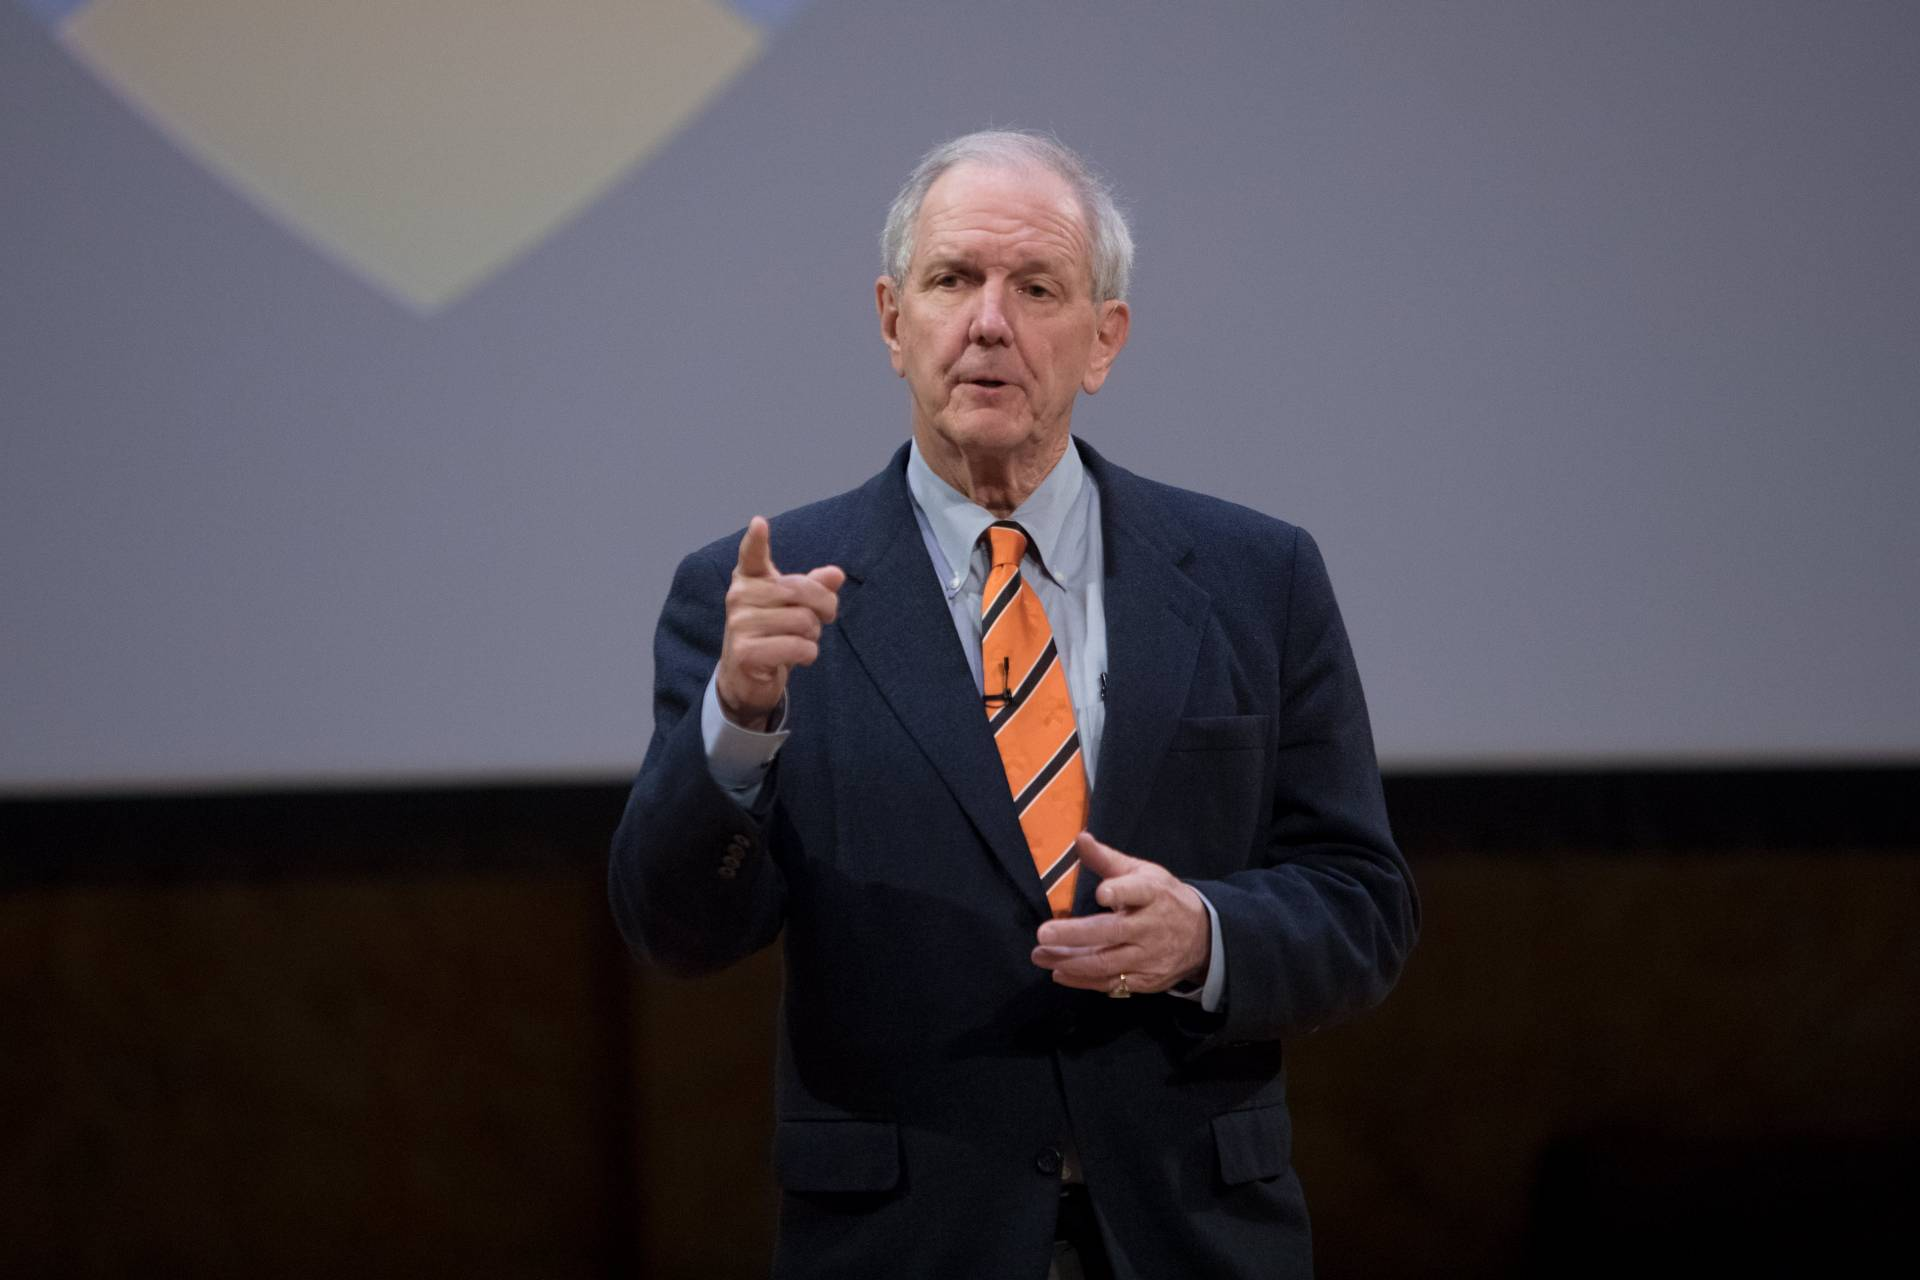 Charles Gibson speaks at Alumni Day 2018